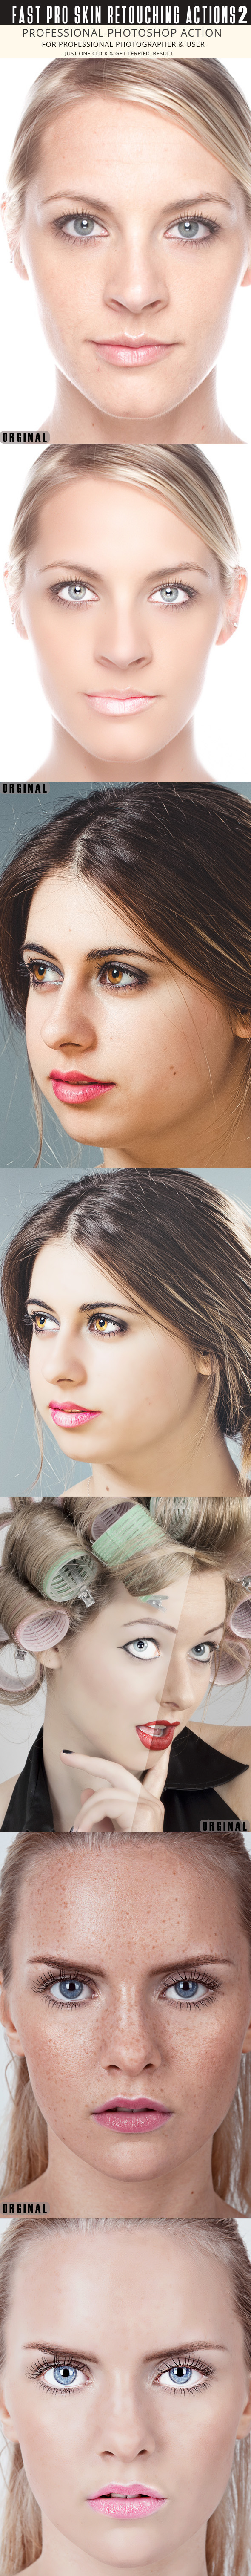 Fast Skin Retouching Actions 2 - Photo Effects Actions